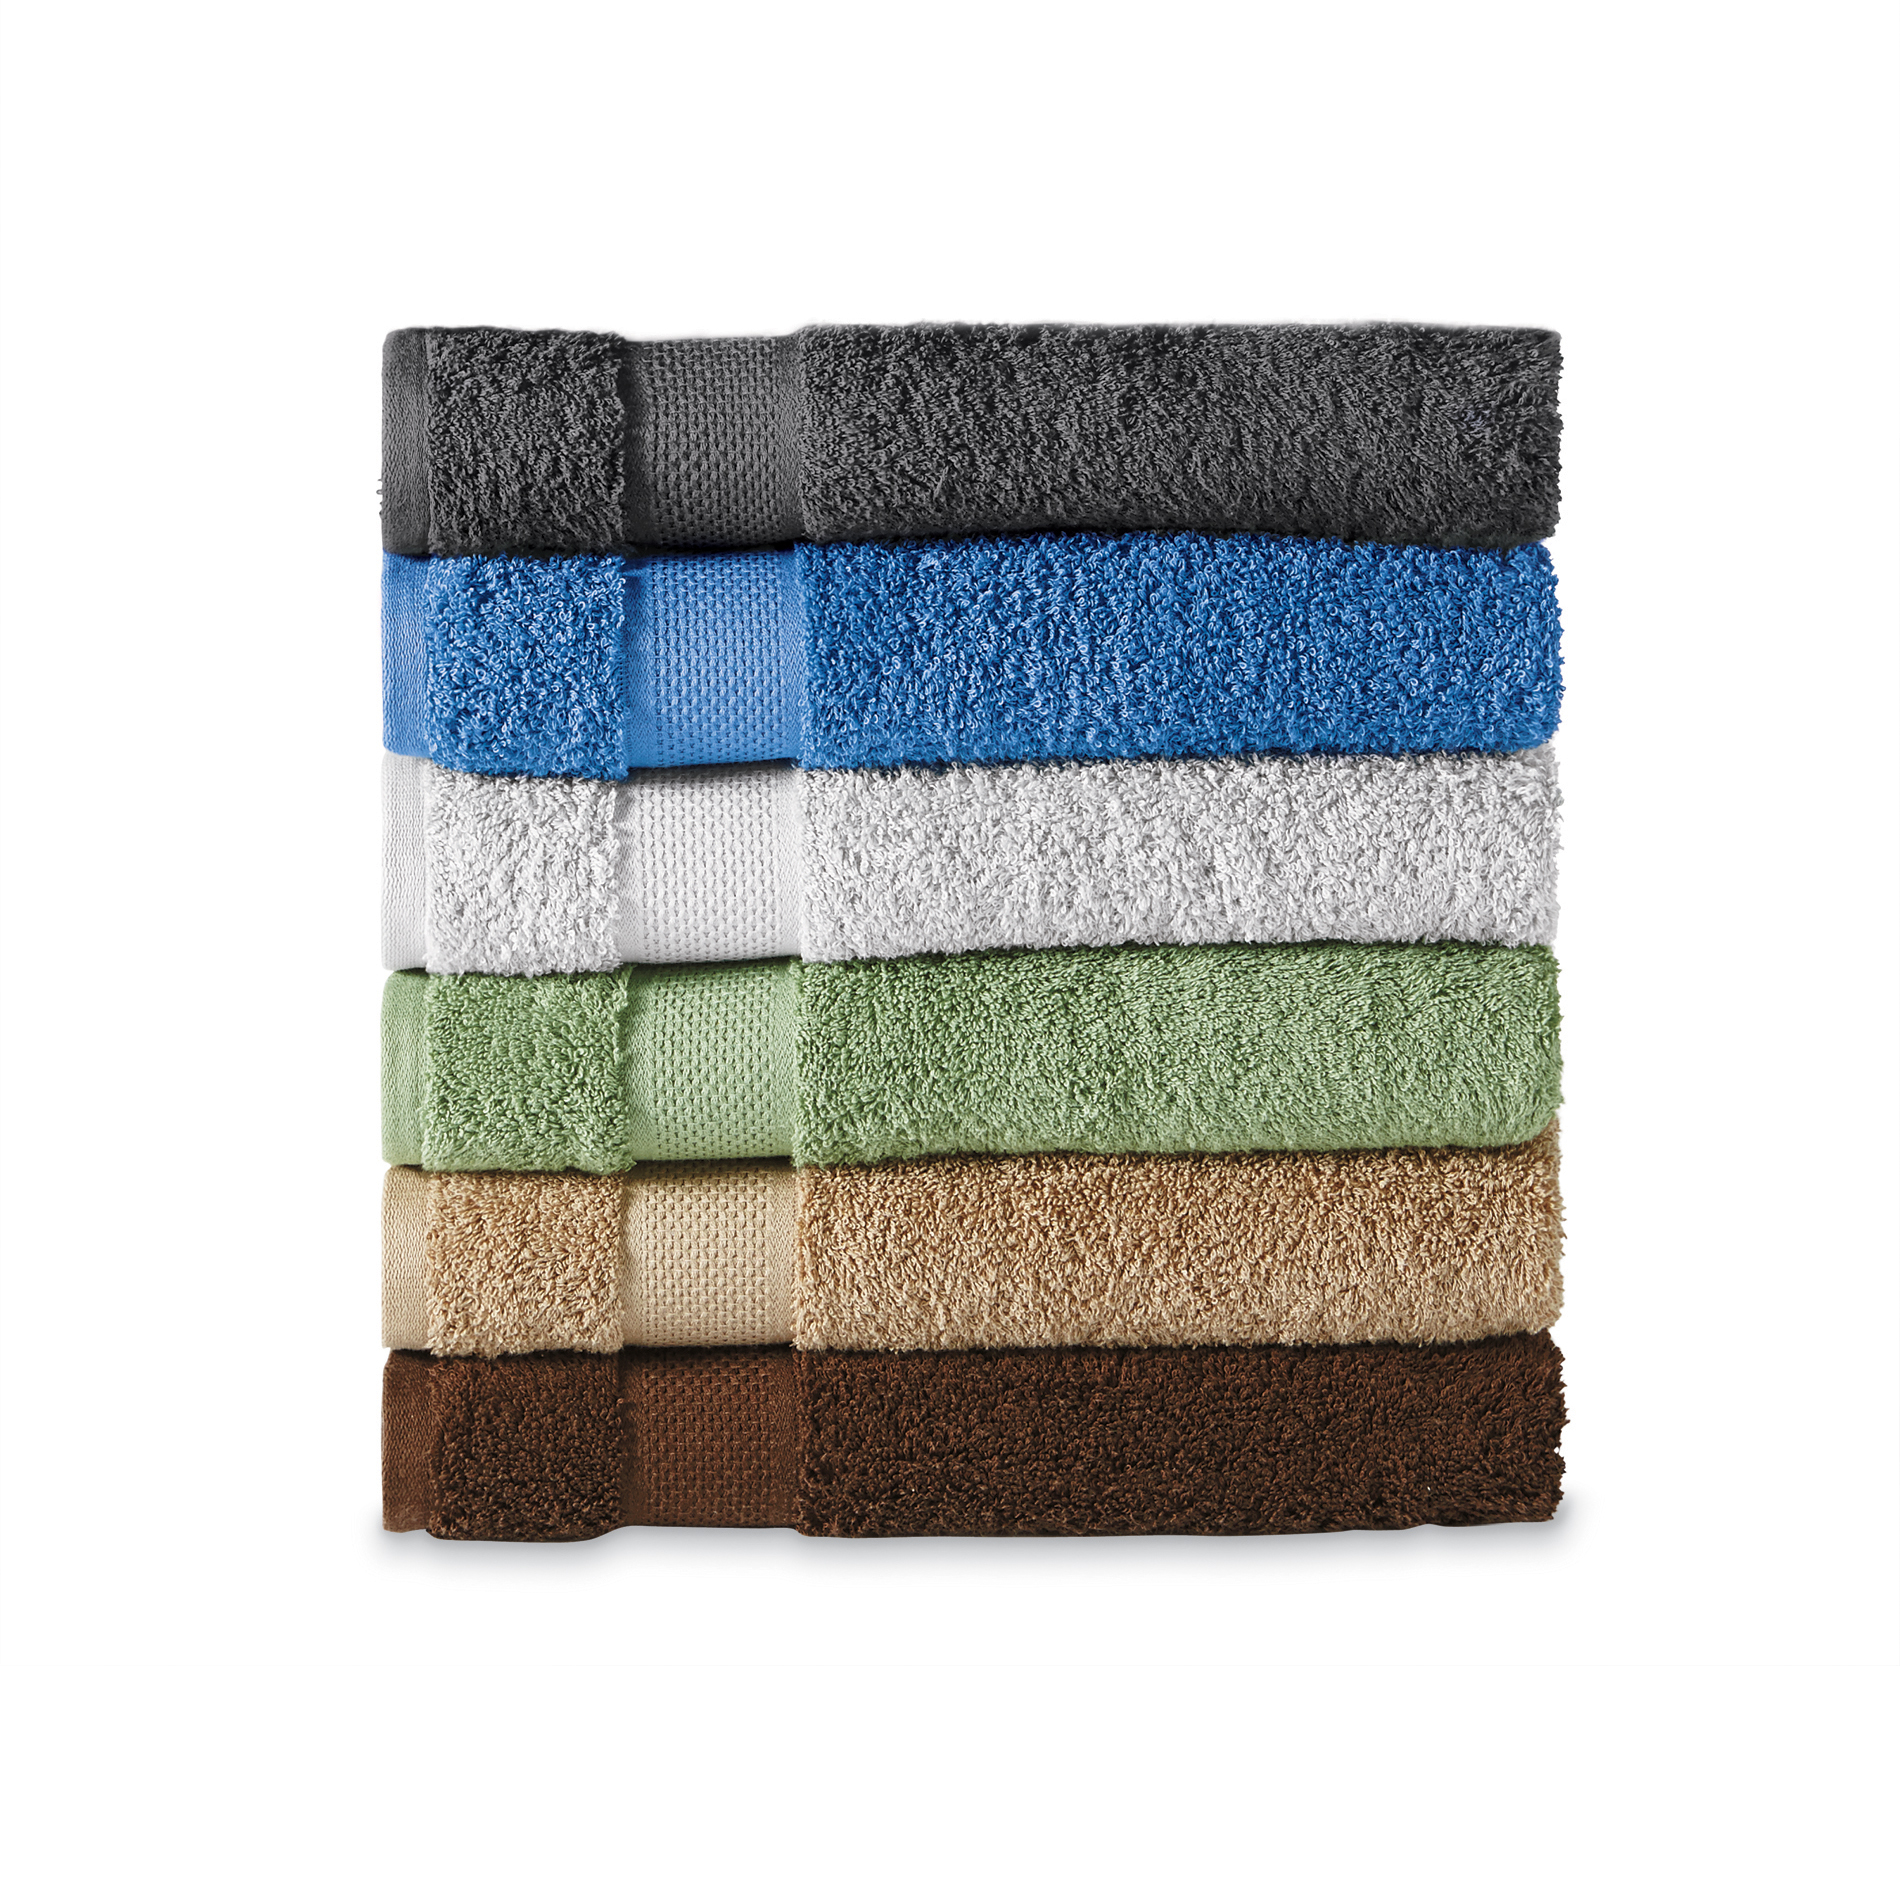 Colormate Ringspun Cotton Bath Towel Hand Towel or Washcloth